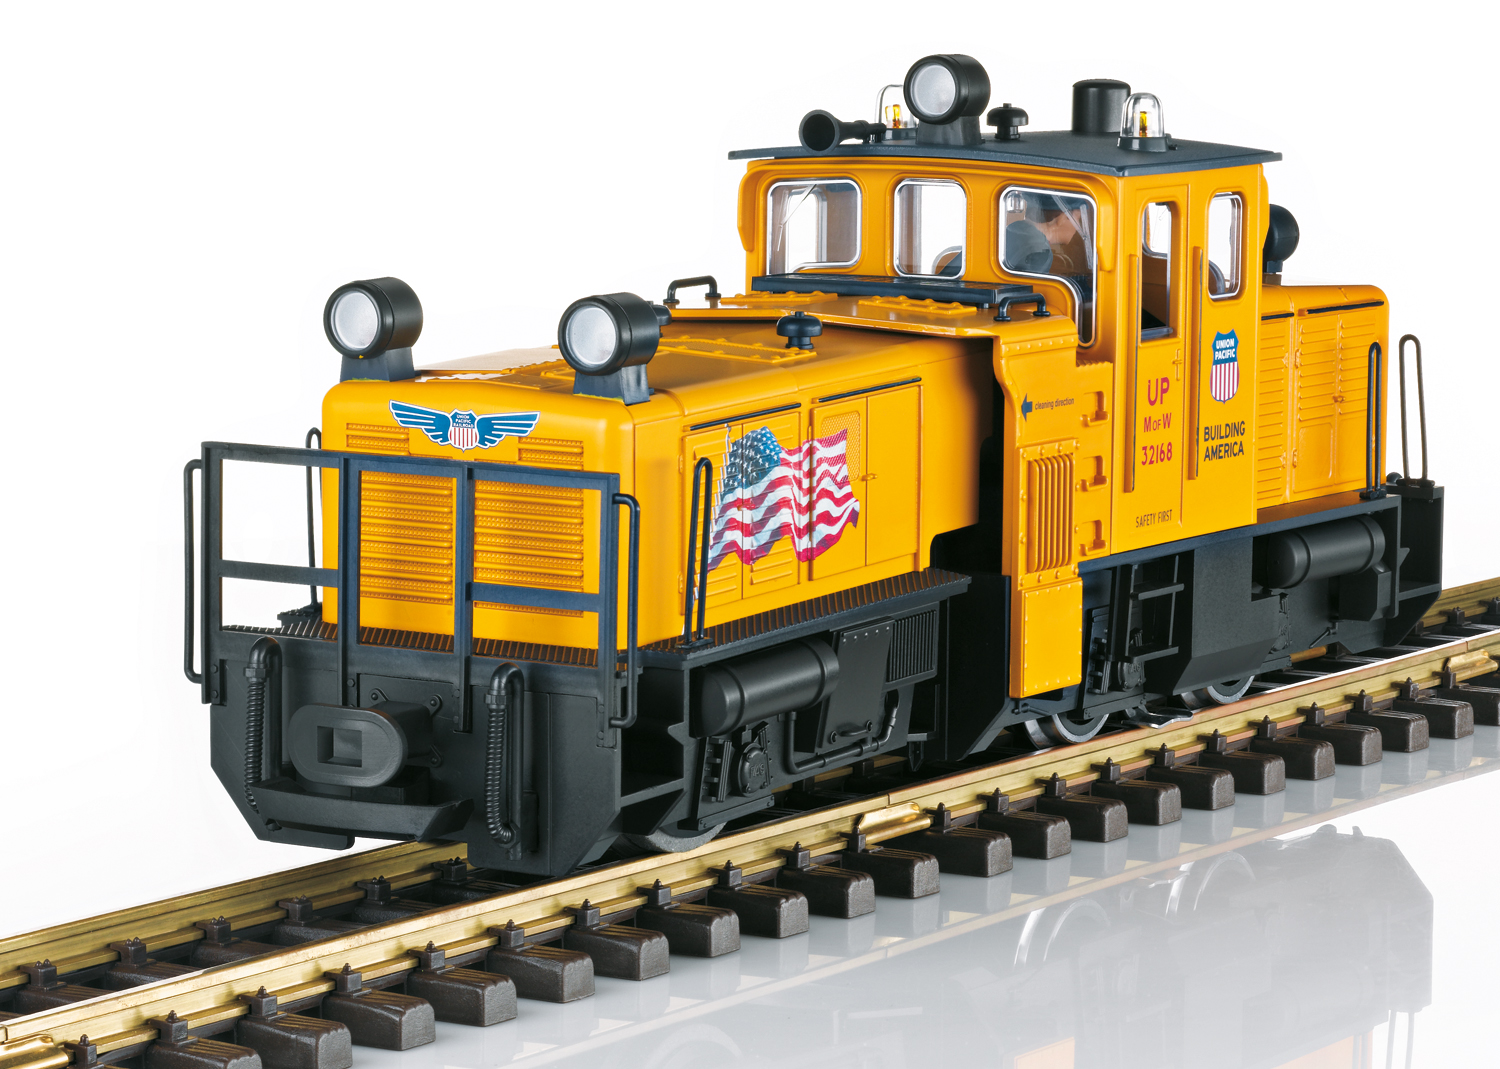 USA Track Cleaning Locomotive